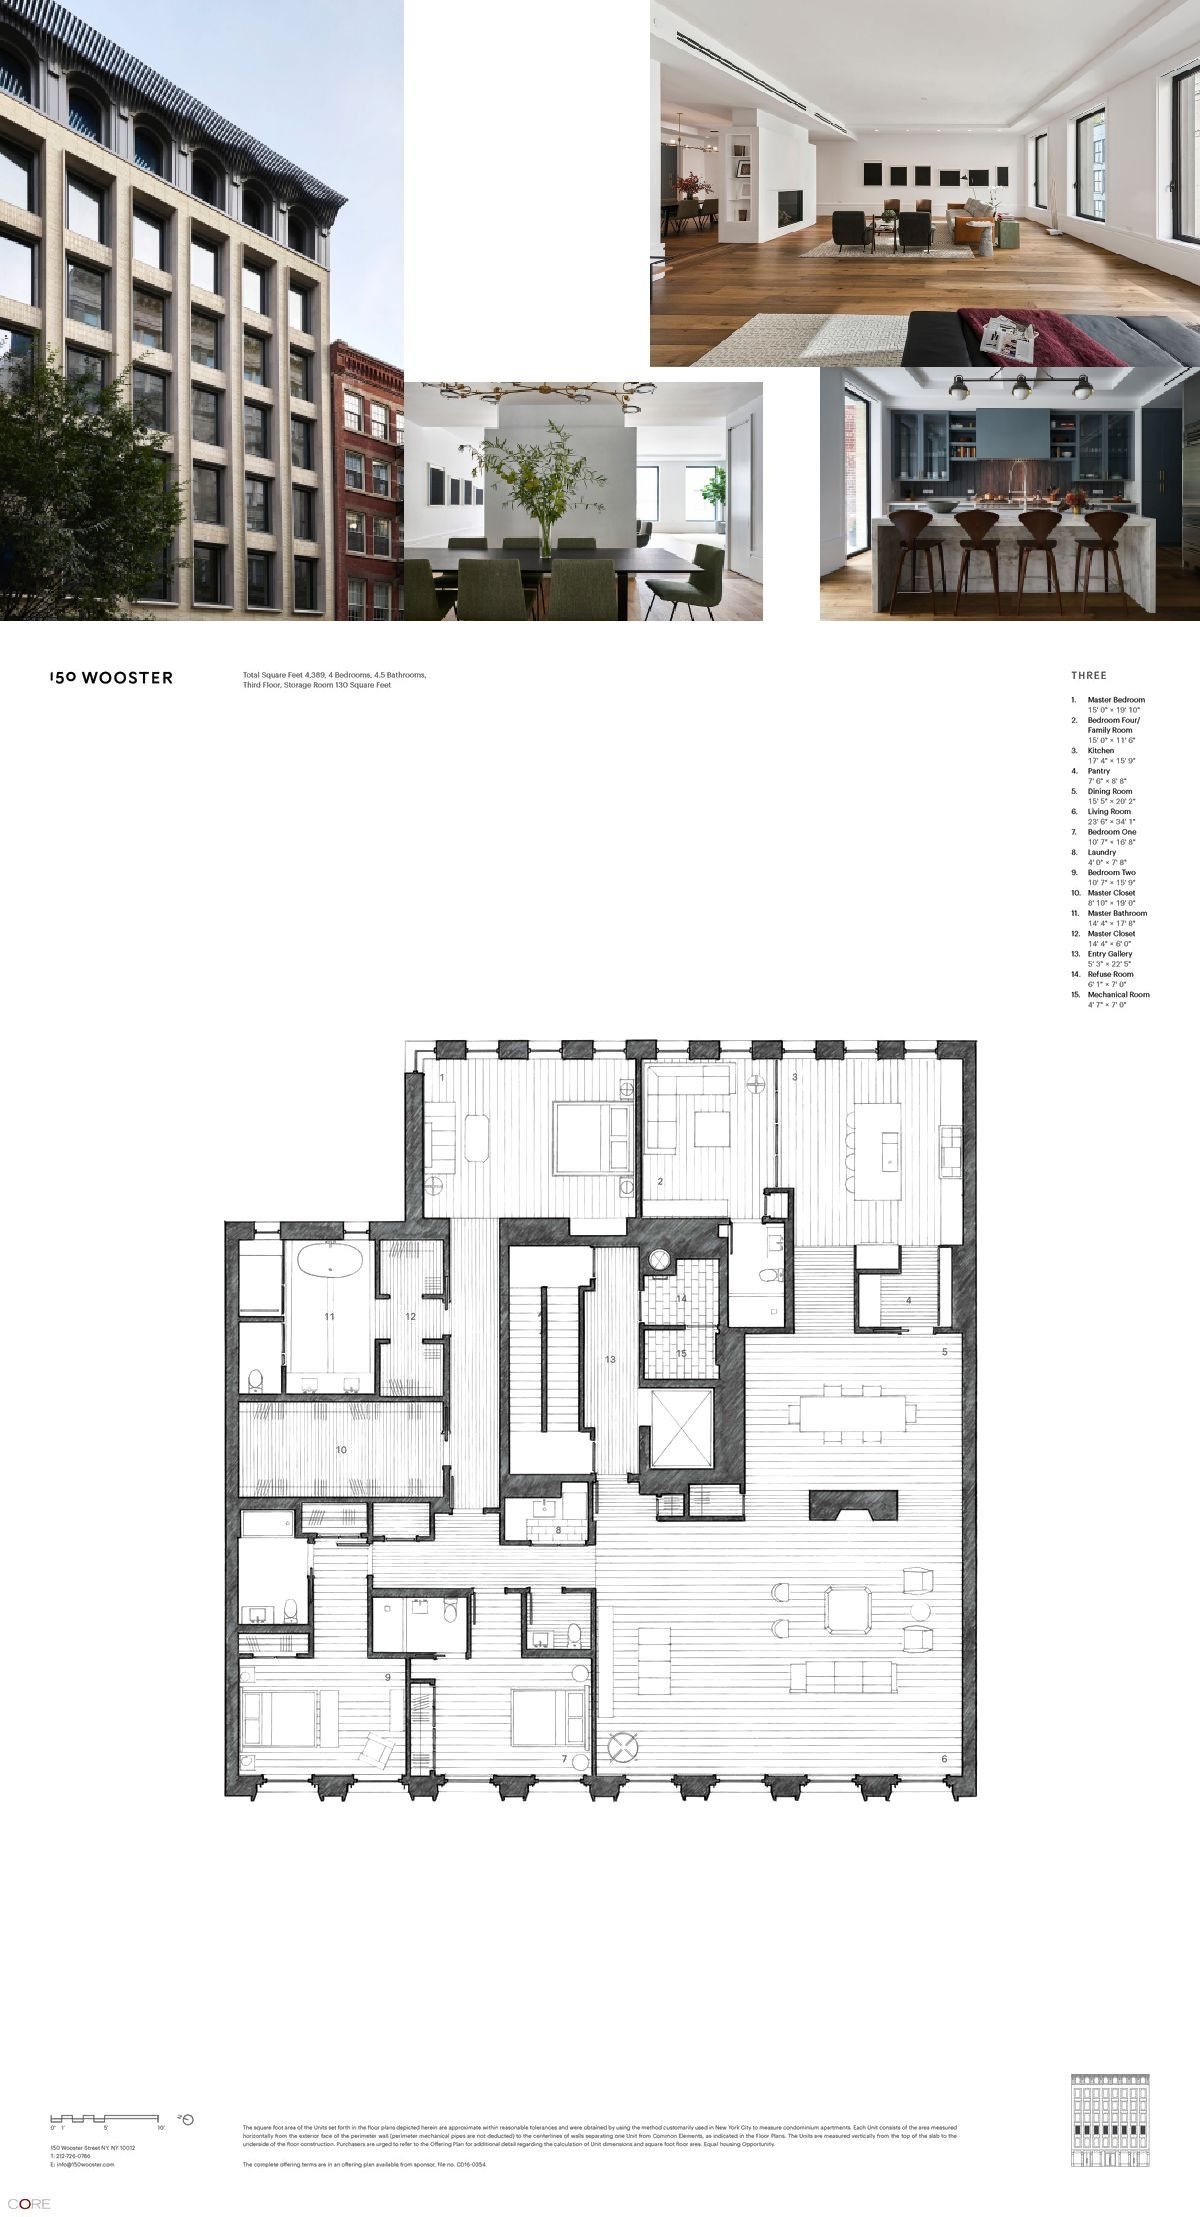 150 Wooster St Loft 3 New York Ny 10012 Core Real Estate Home Building Design Apartment Floor Plans Apartment Architecture